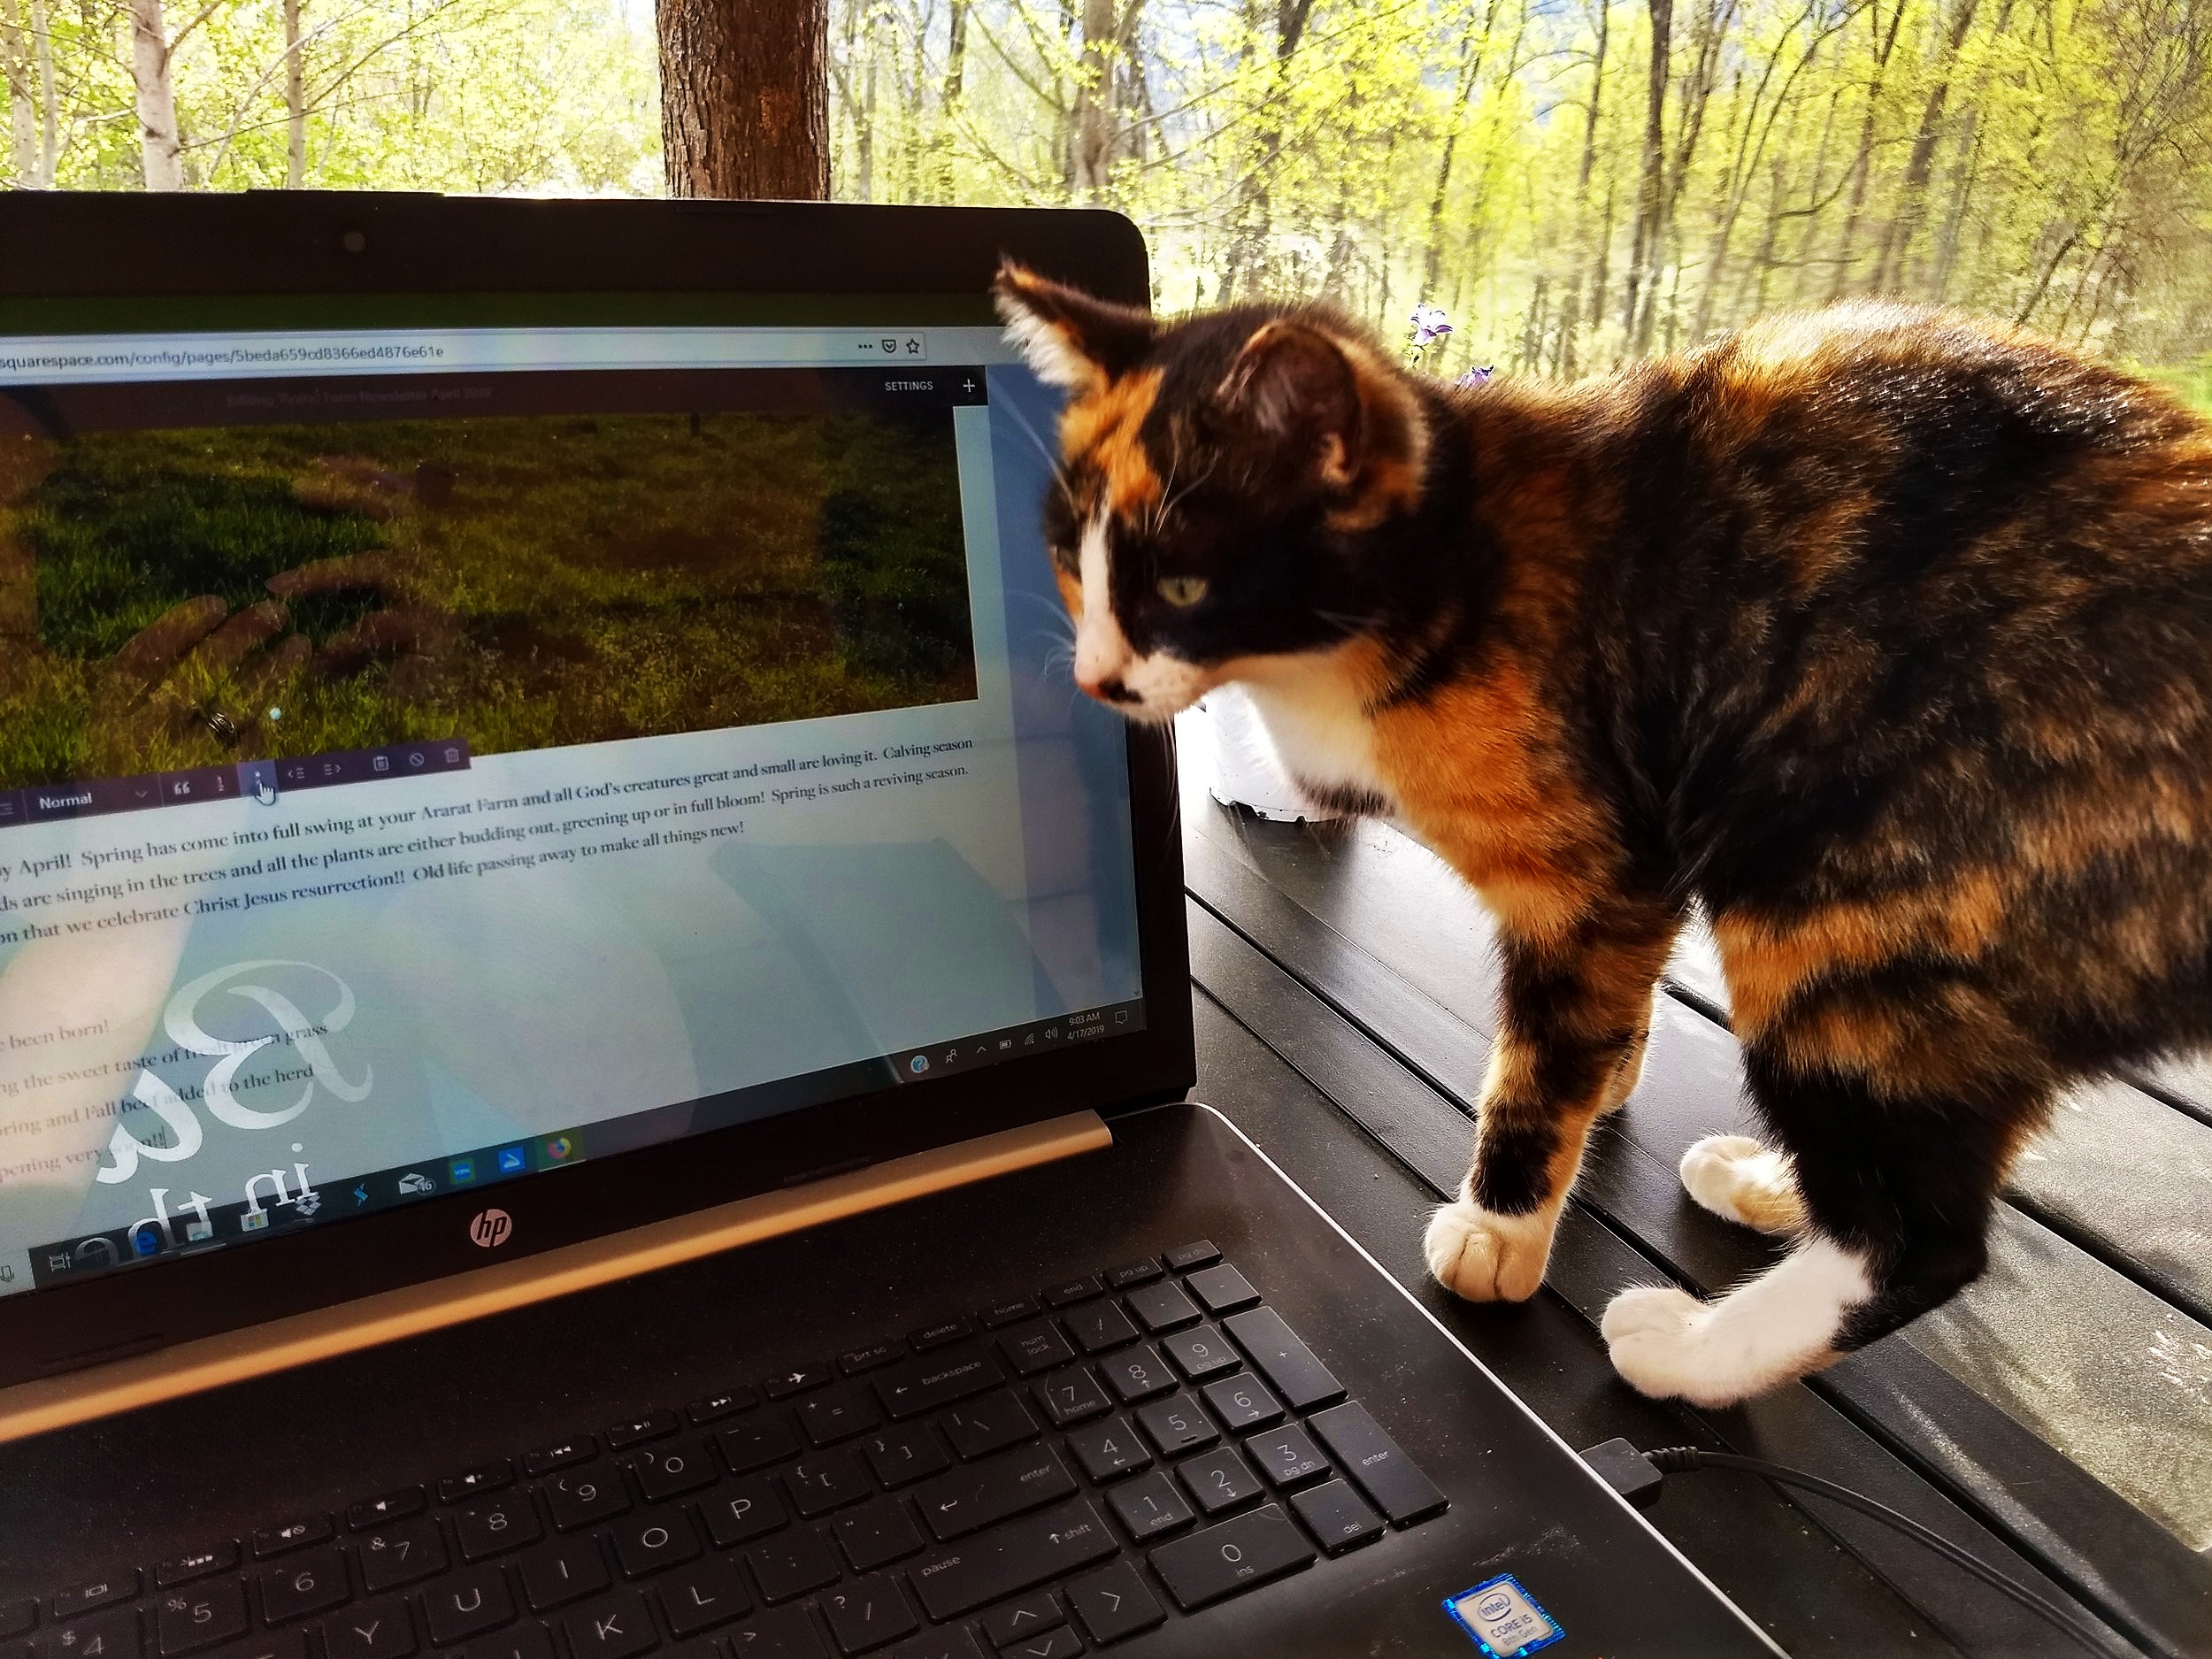 Final words - We hope that you all enjoyed the update on your farm. Matt and Lauren are expecting their first child the end of this month so hopefully we will be able to keep up with the emails and newsletter. Perhaps our kitty Boogie can help this next month. Thank you!Your Ararat Farm!